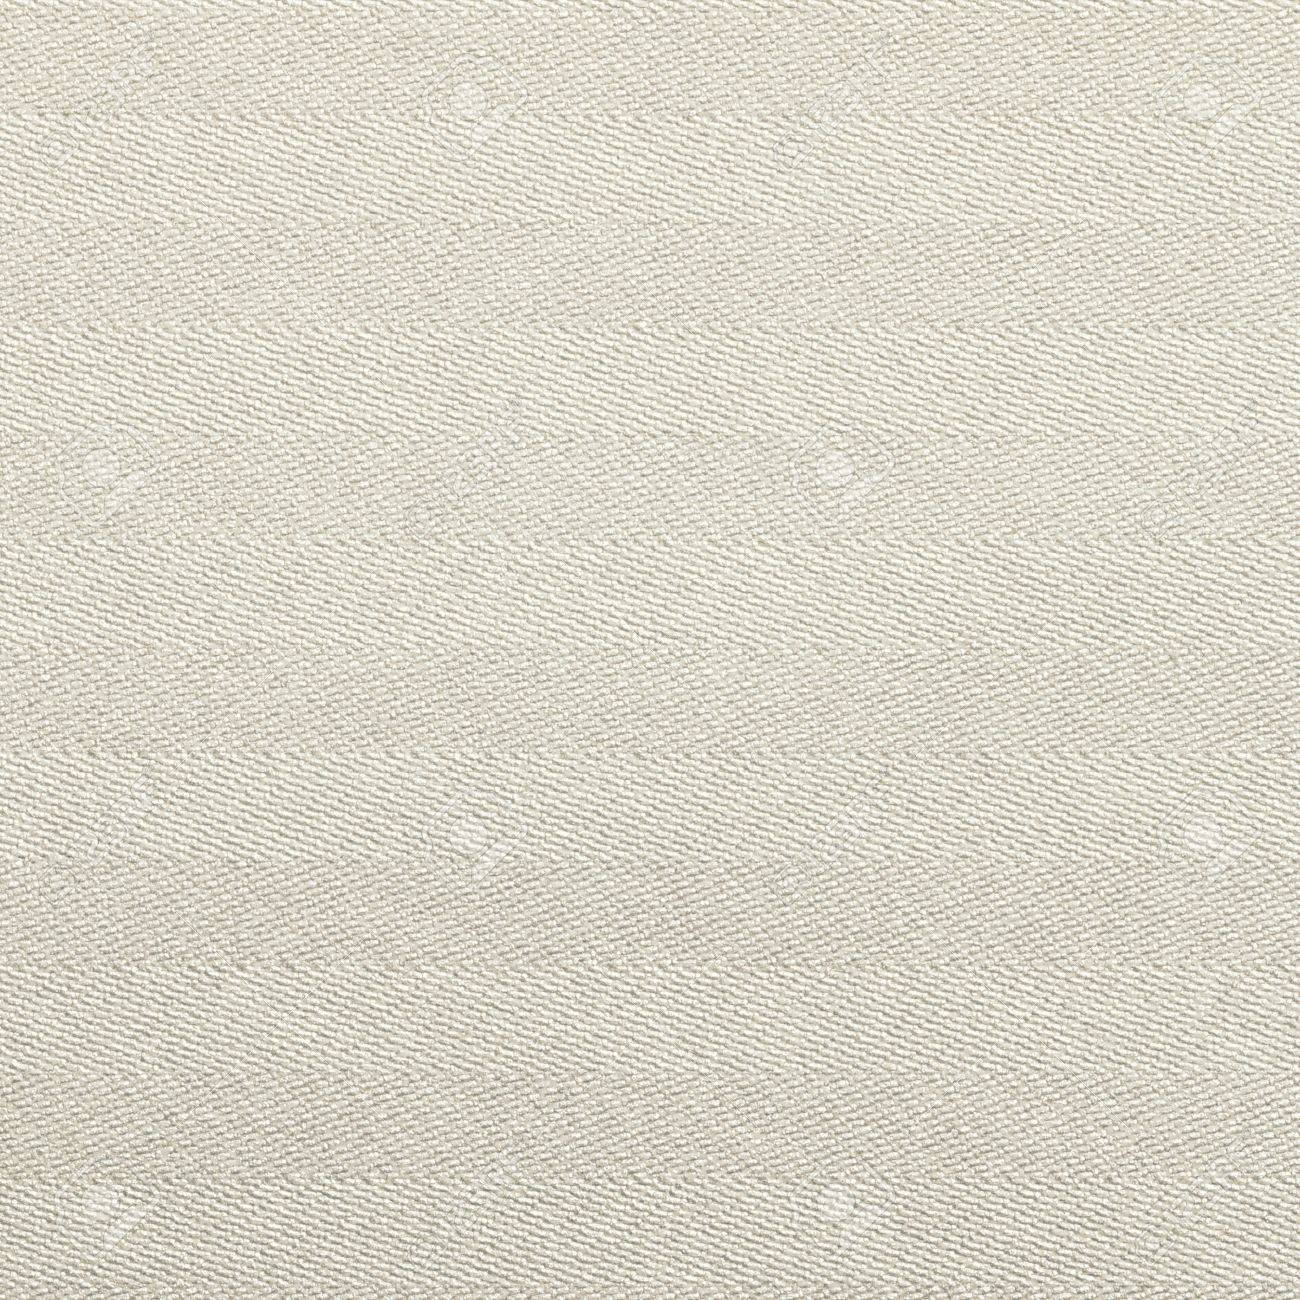 Art Paper Textured Background - Orderly Stripes, Gray Colour Stock ...